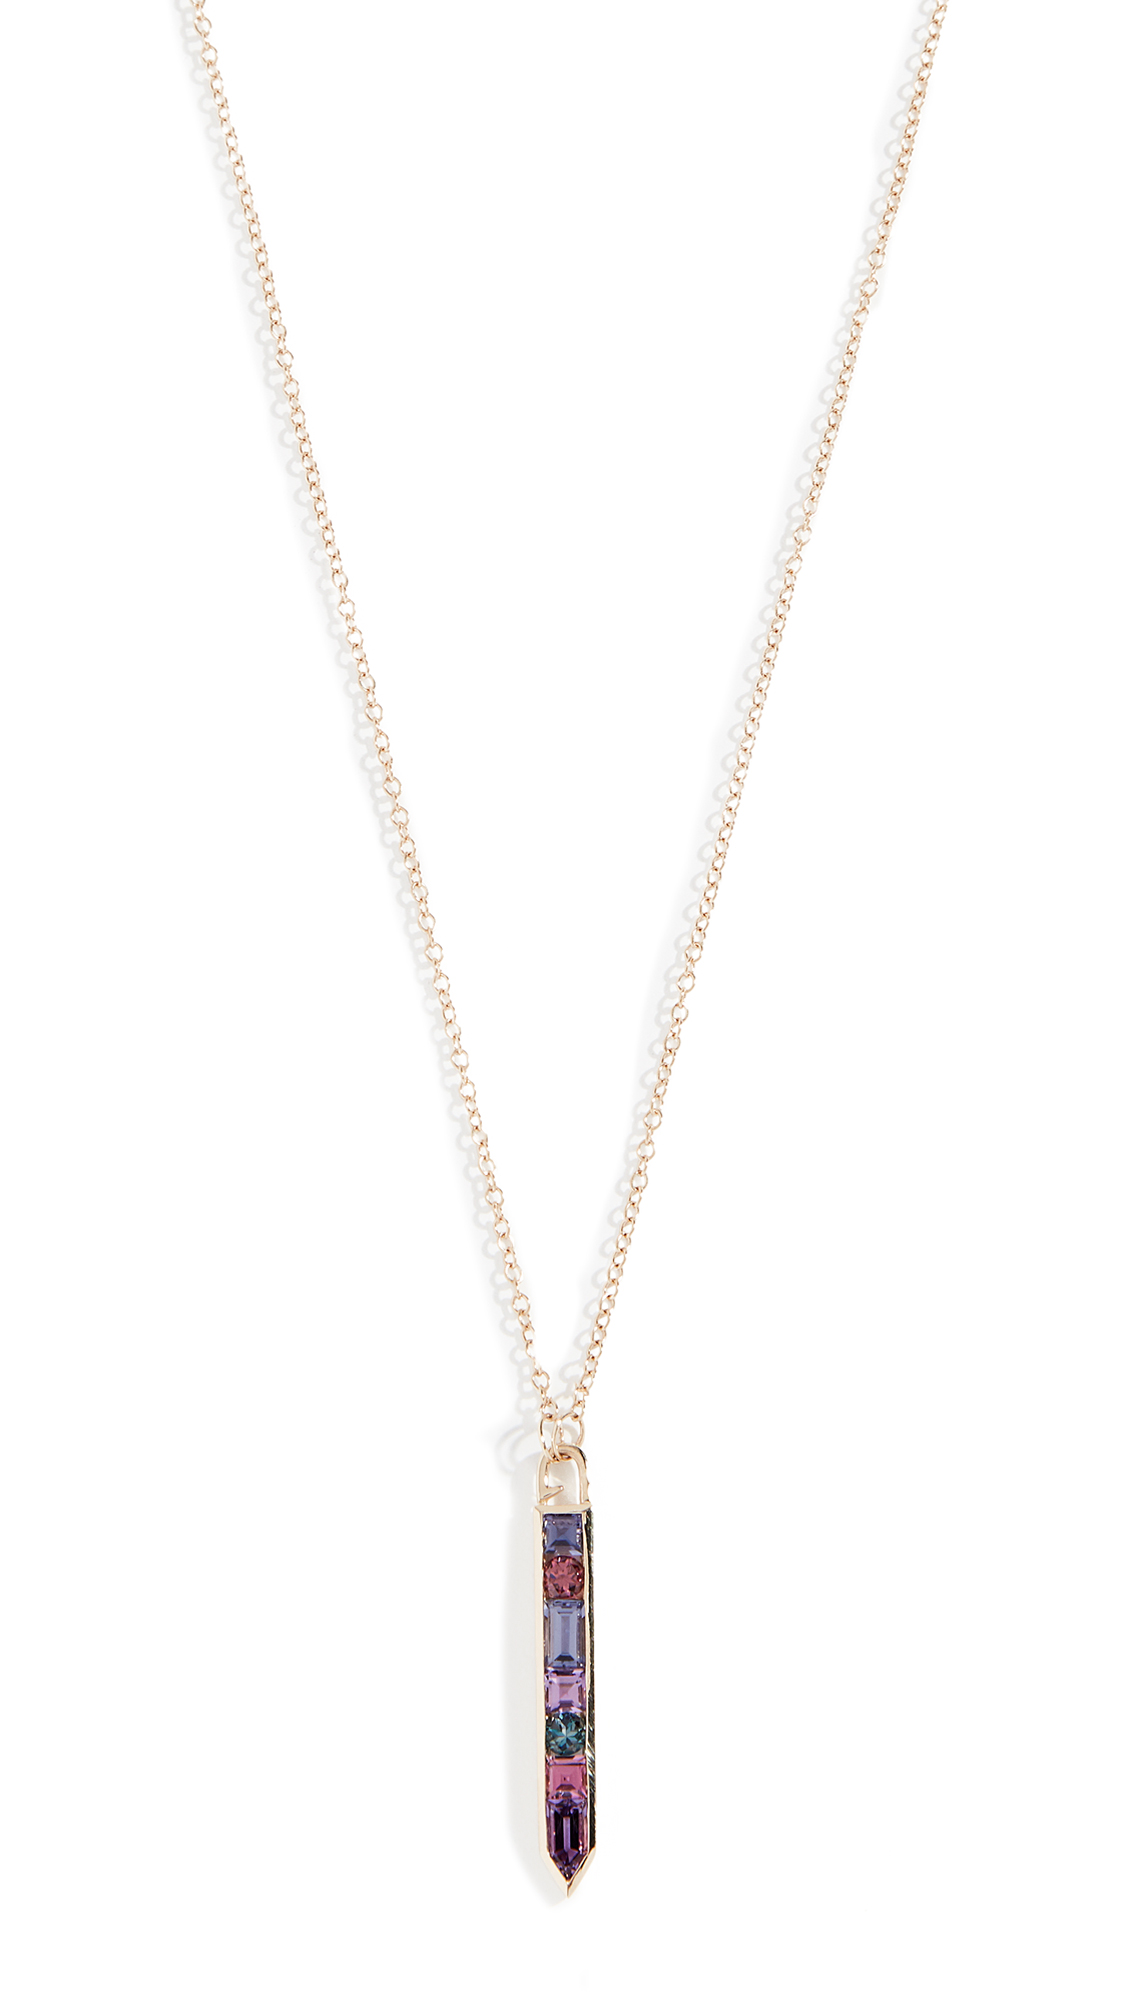 JANE TAYLOR 14K Vertical Arrow Necklace in Purple Multi